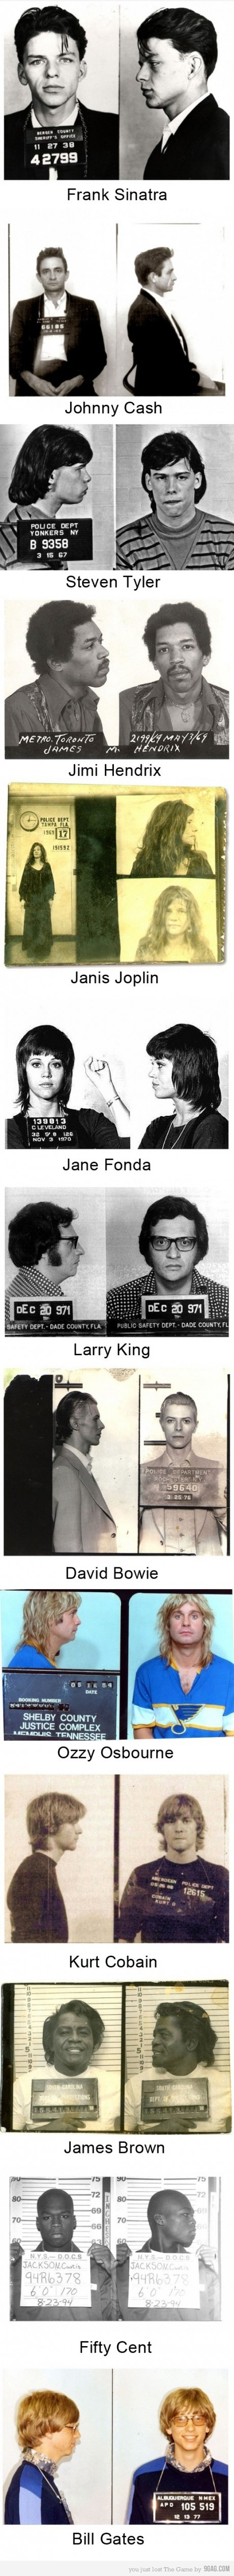 Celebrity Mugshots (The last one surprised me! Really?)